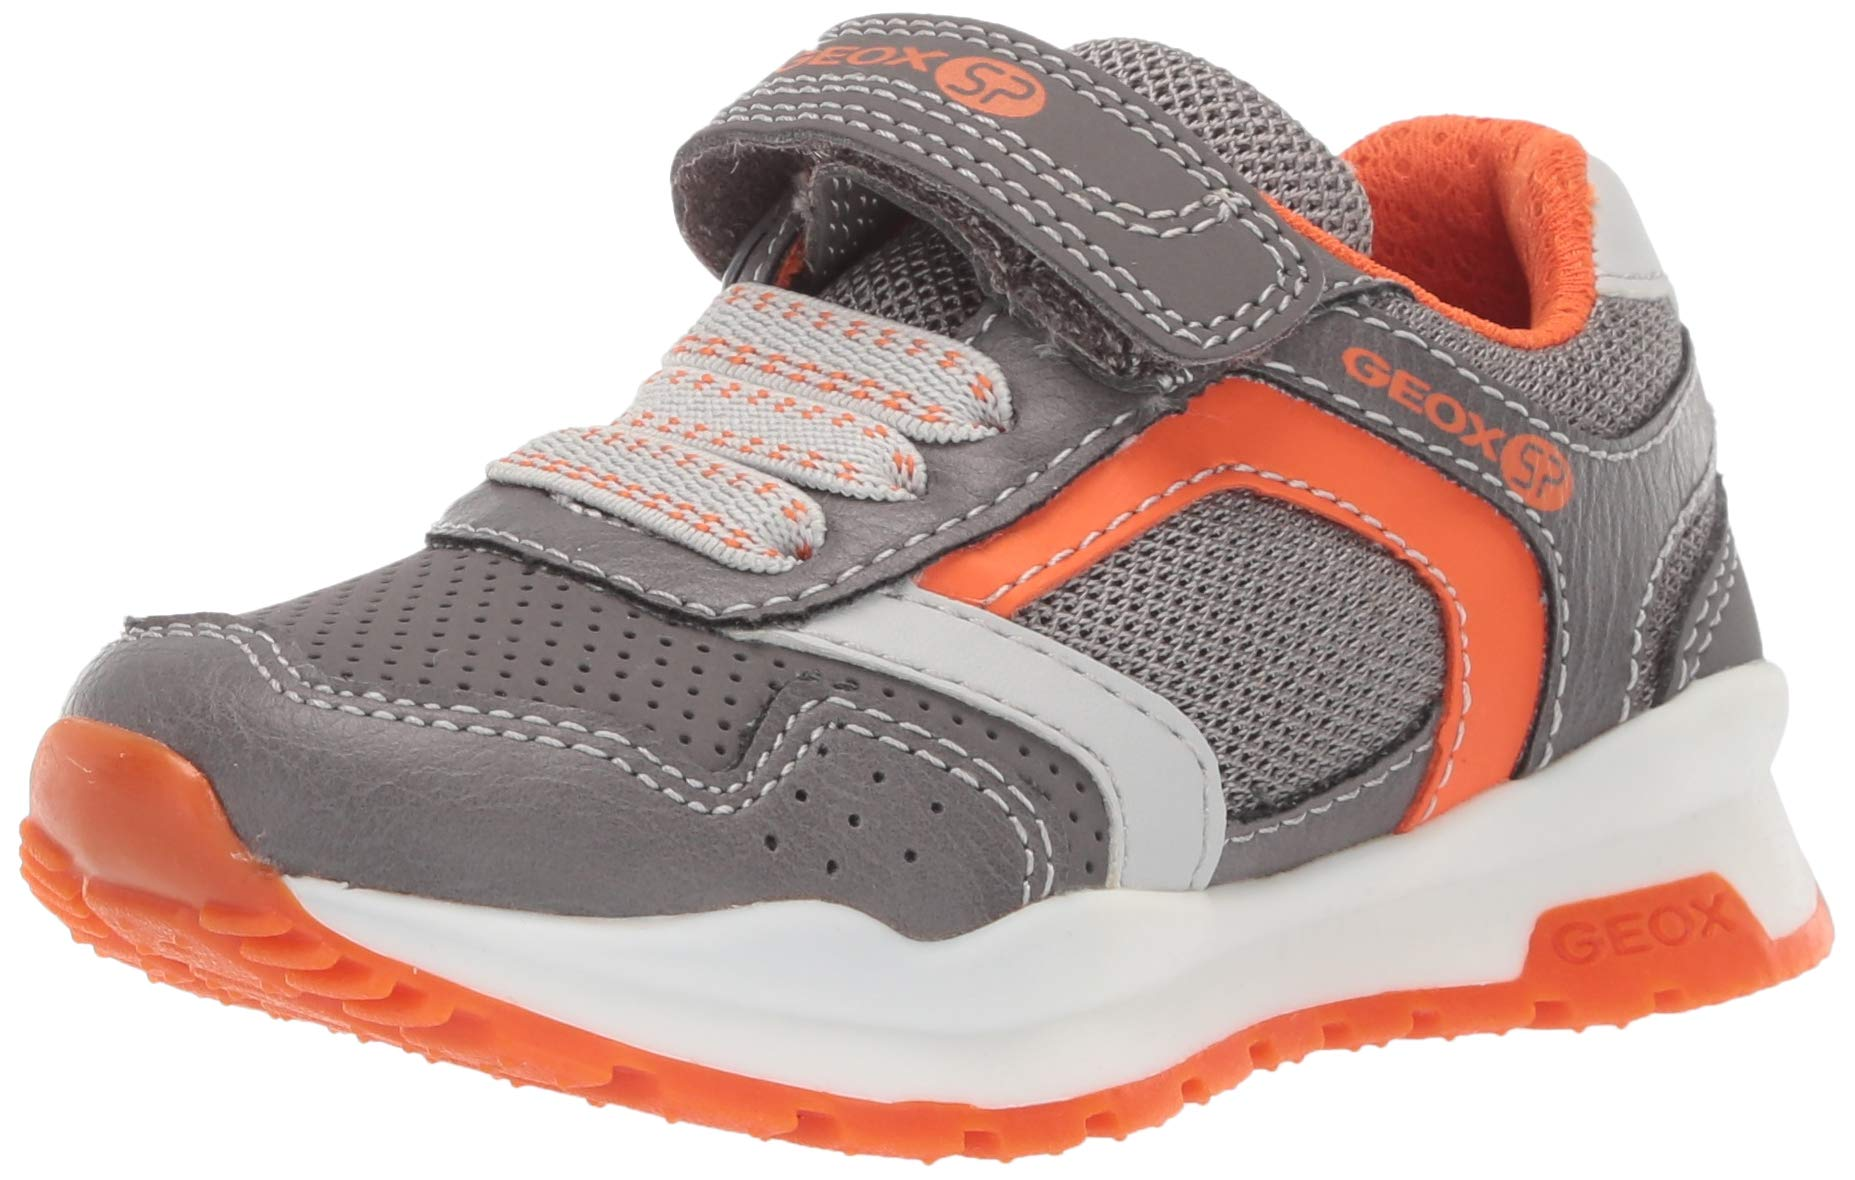 Geox Coridan Boy 6 SP Velcro Sneaker, Grey/Orange, 29 Medium US Little Kid